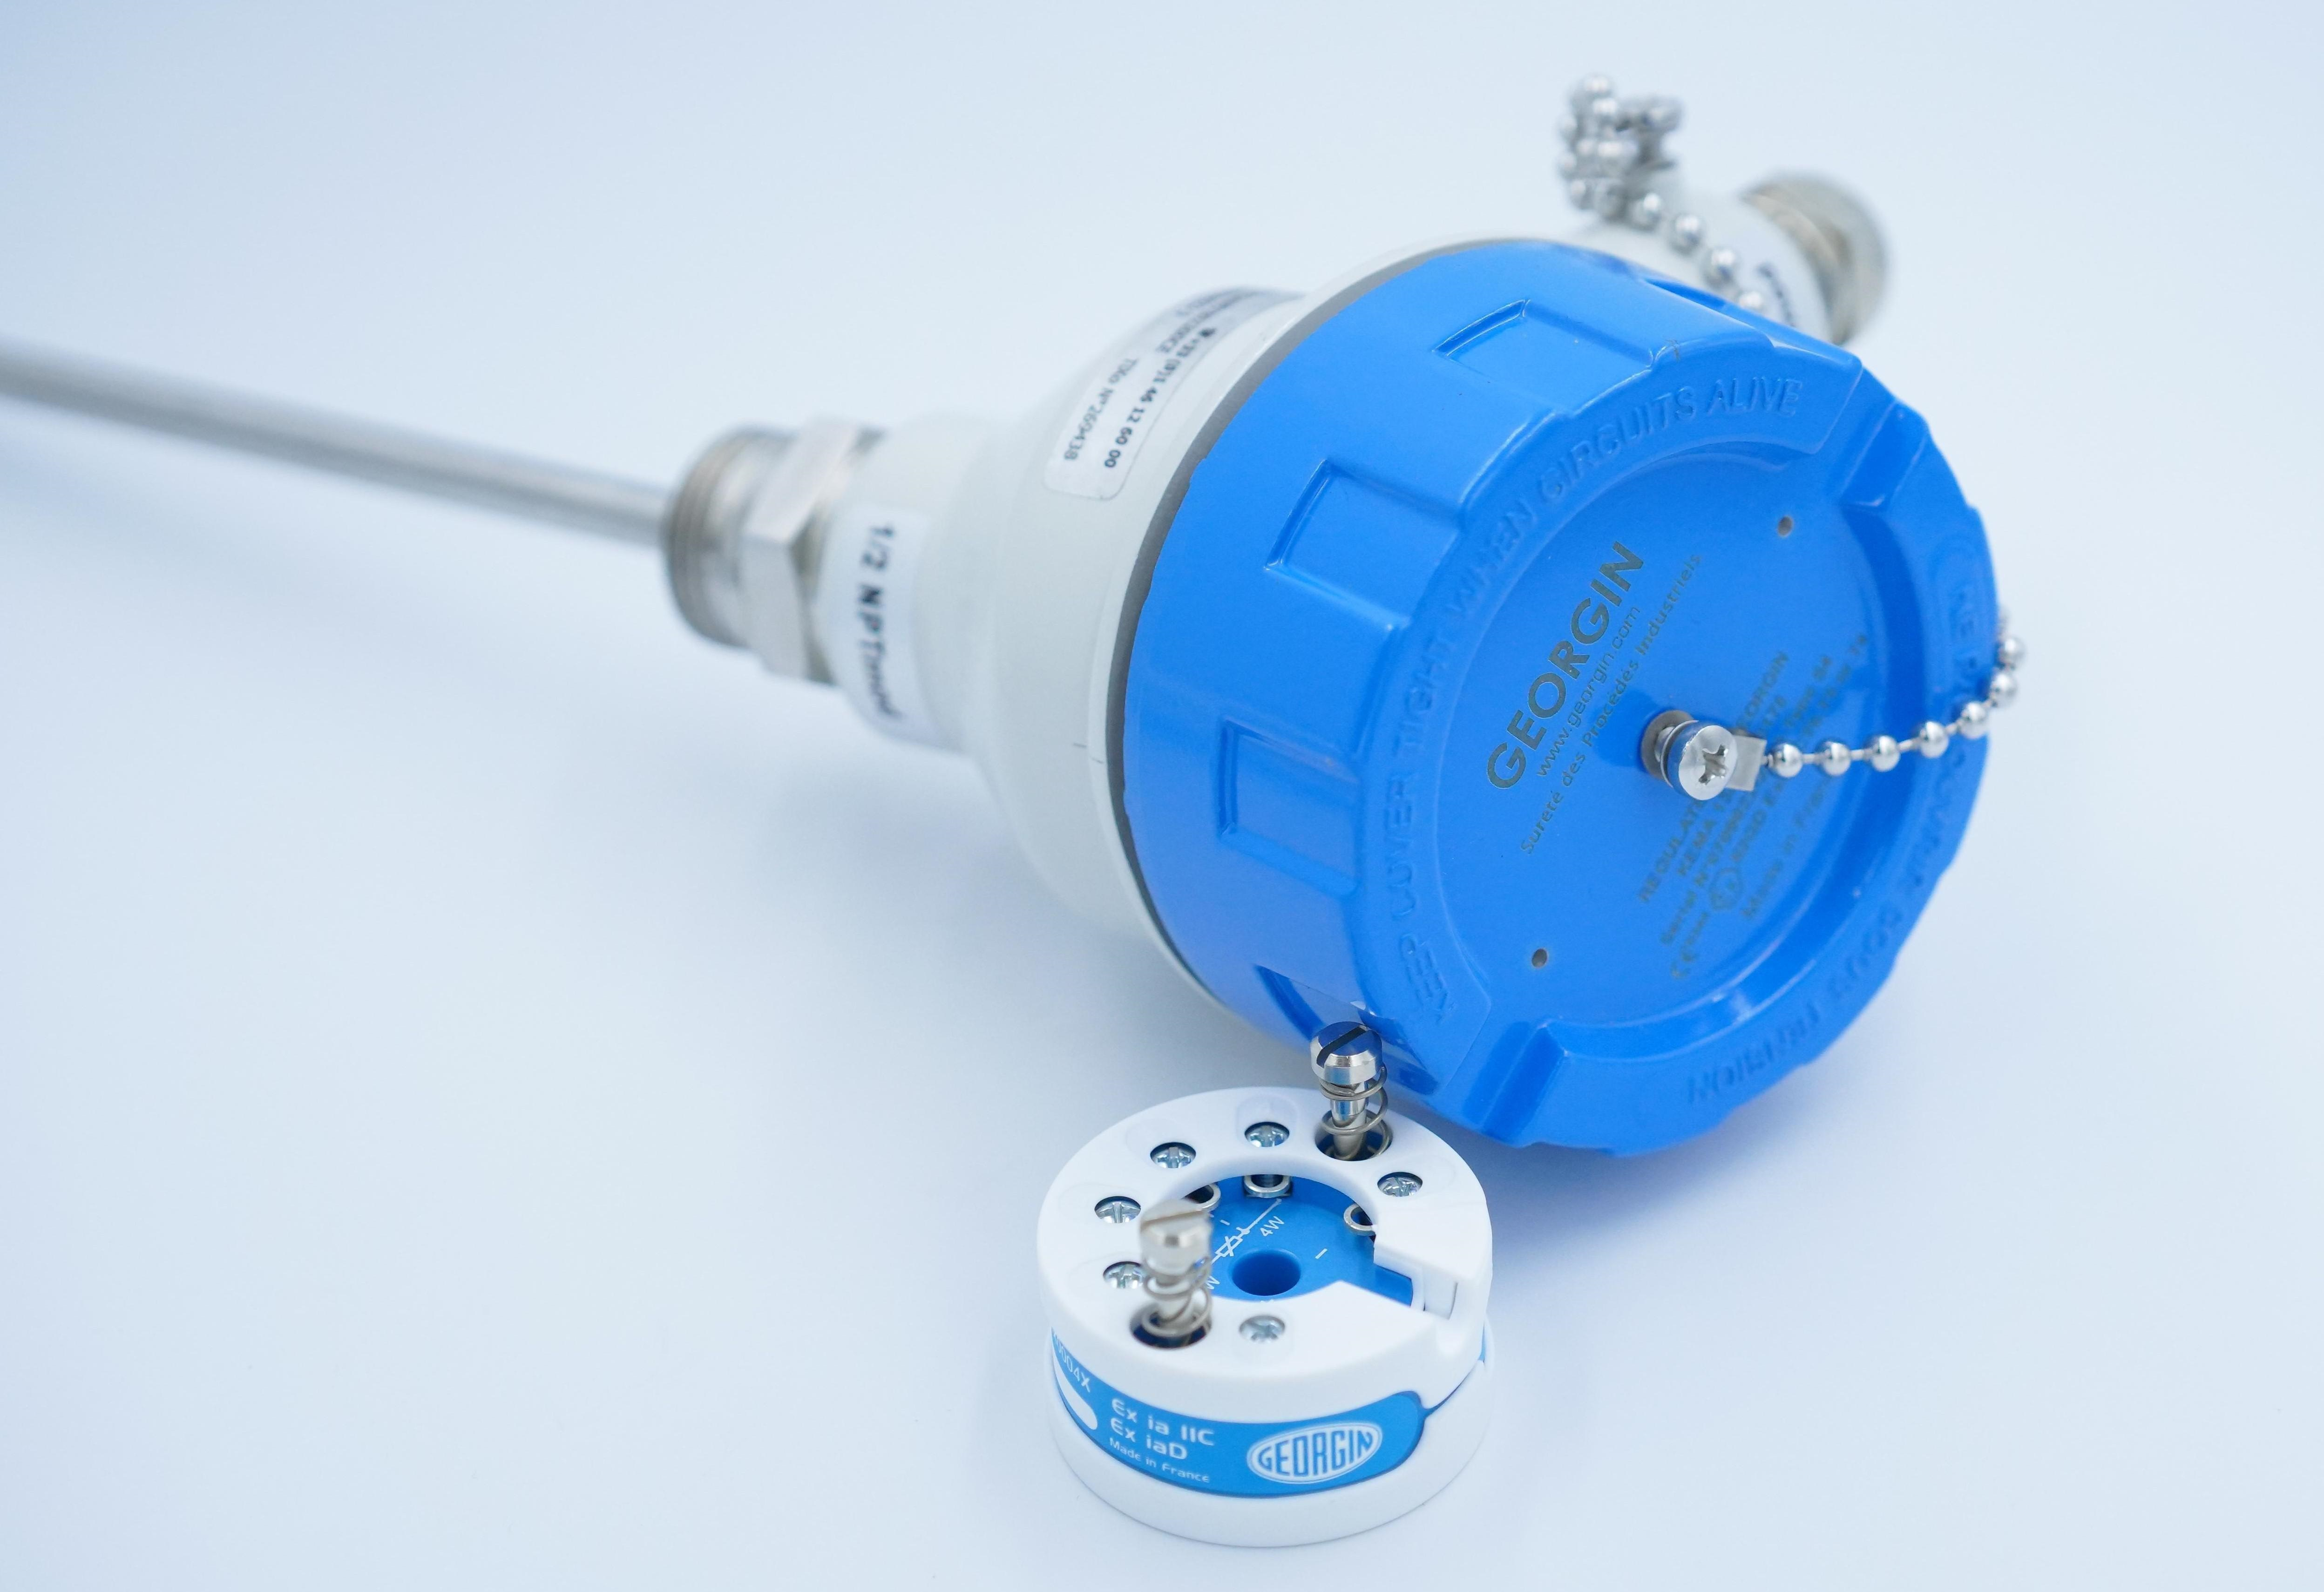 Can nhiệt thermocouple